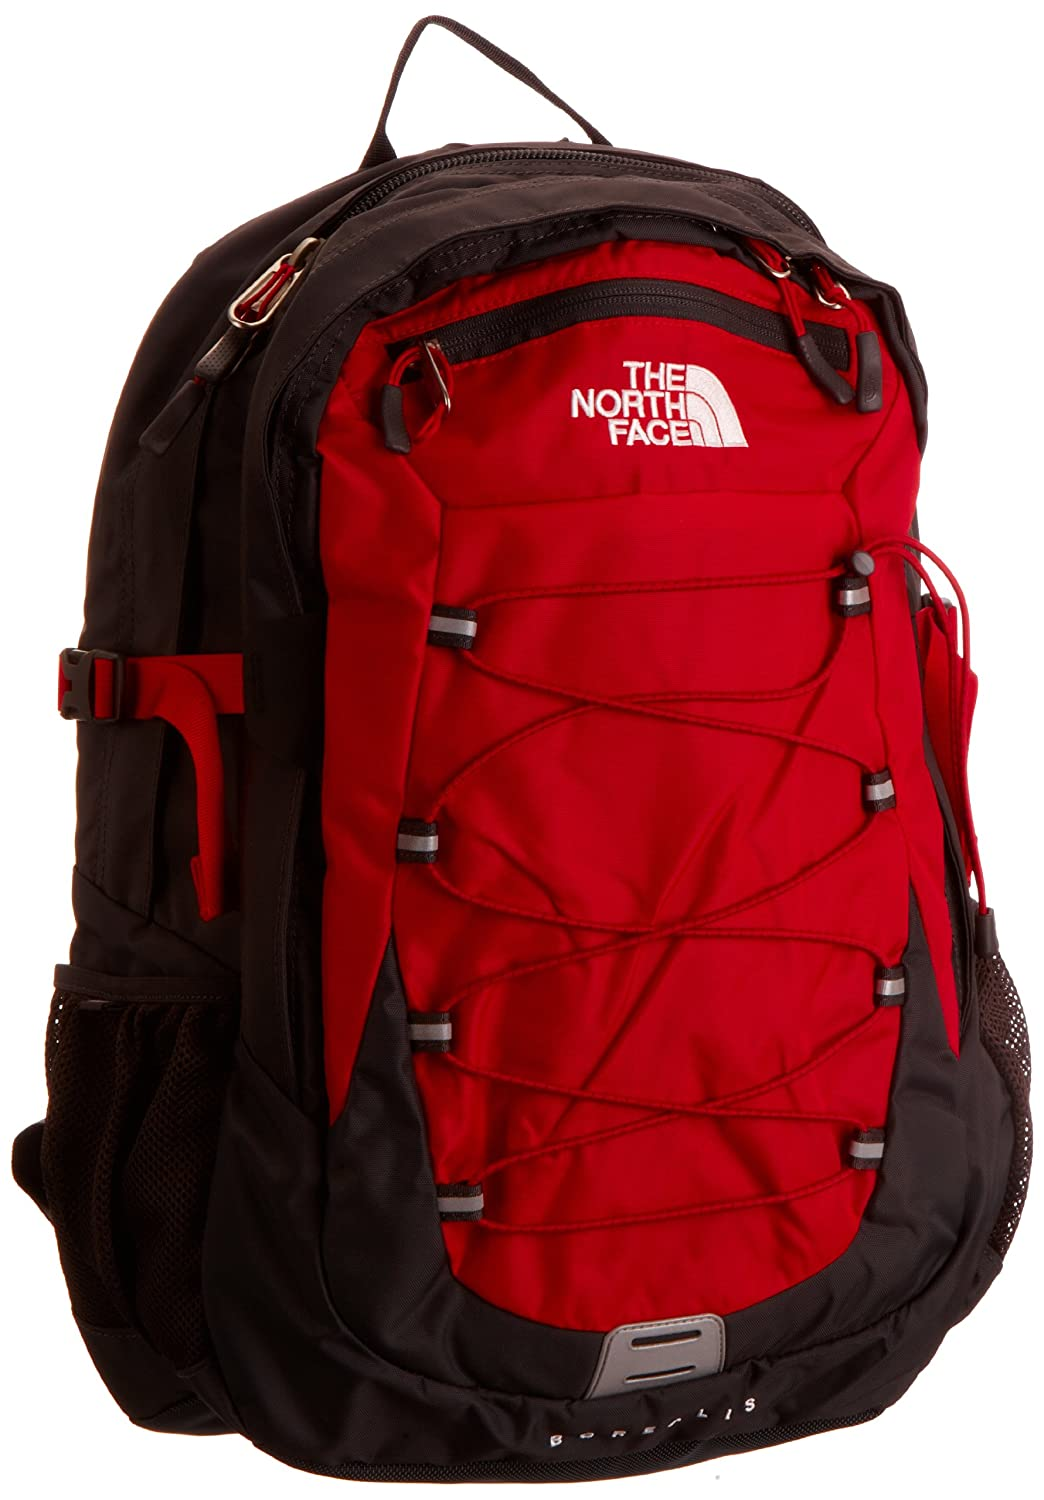 Shop for North Face backpacks